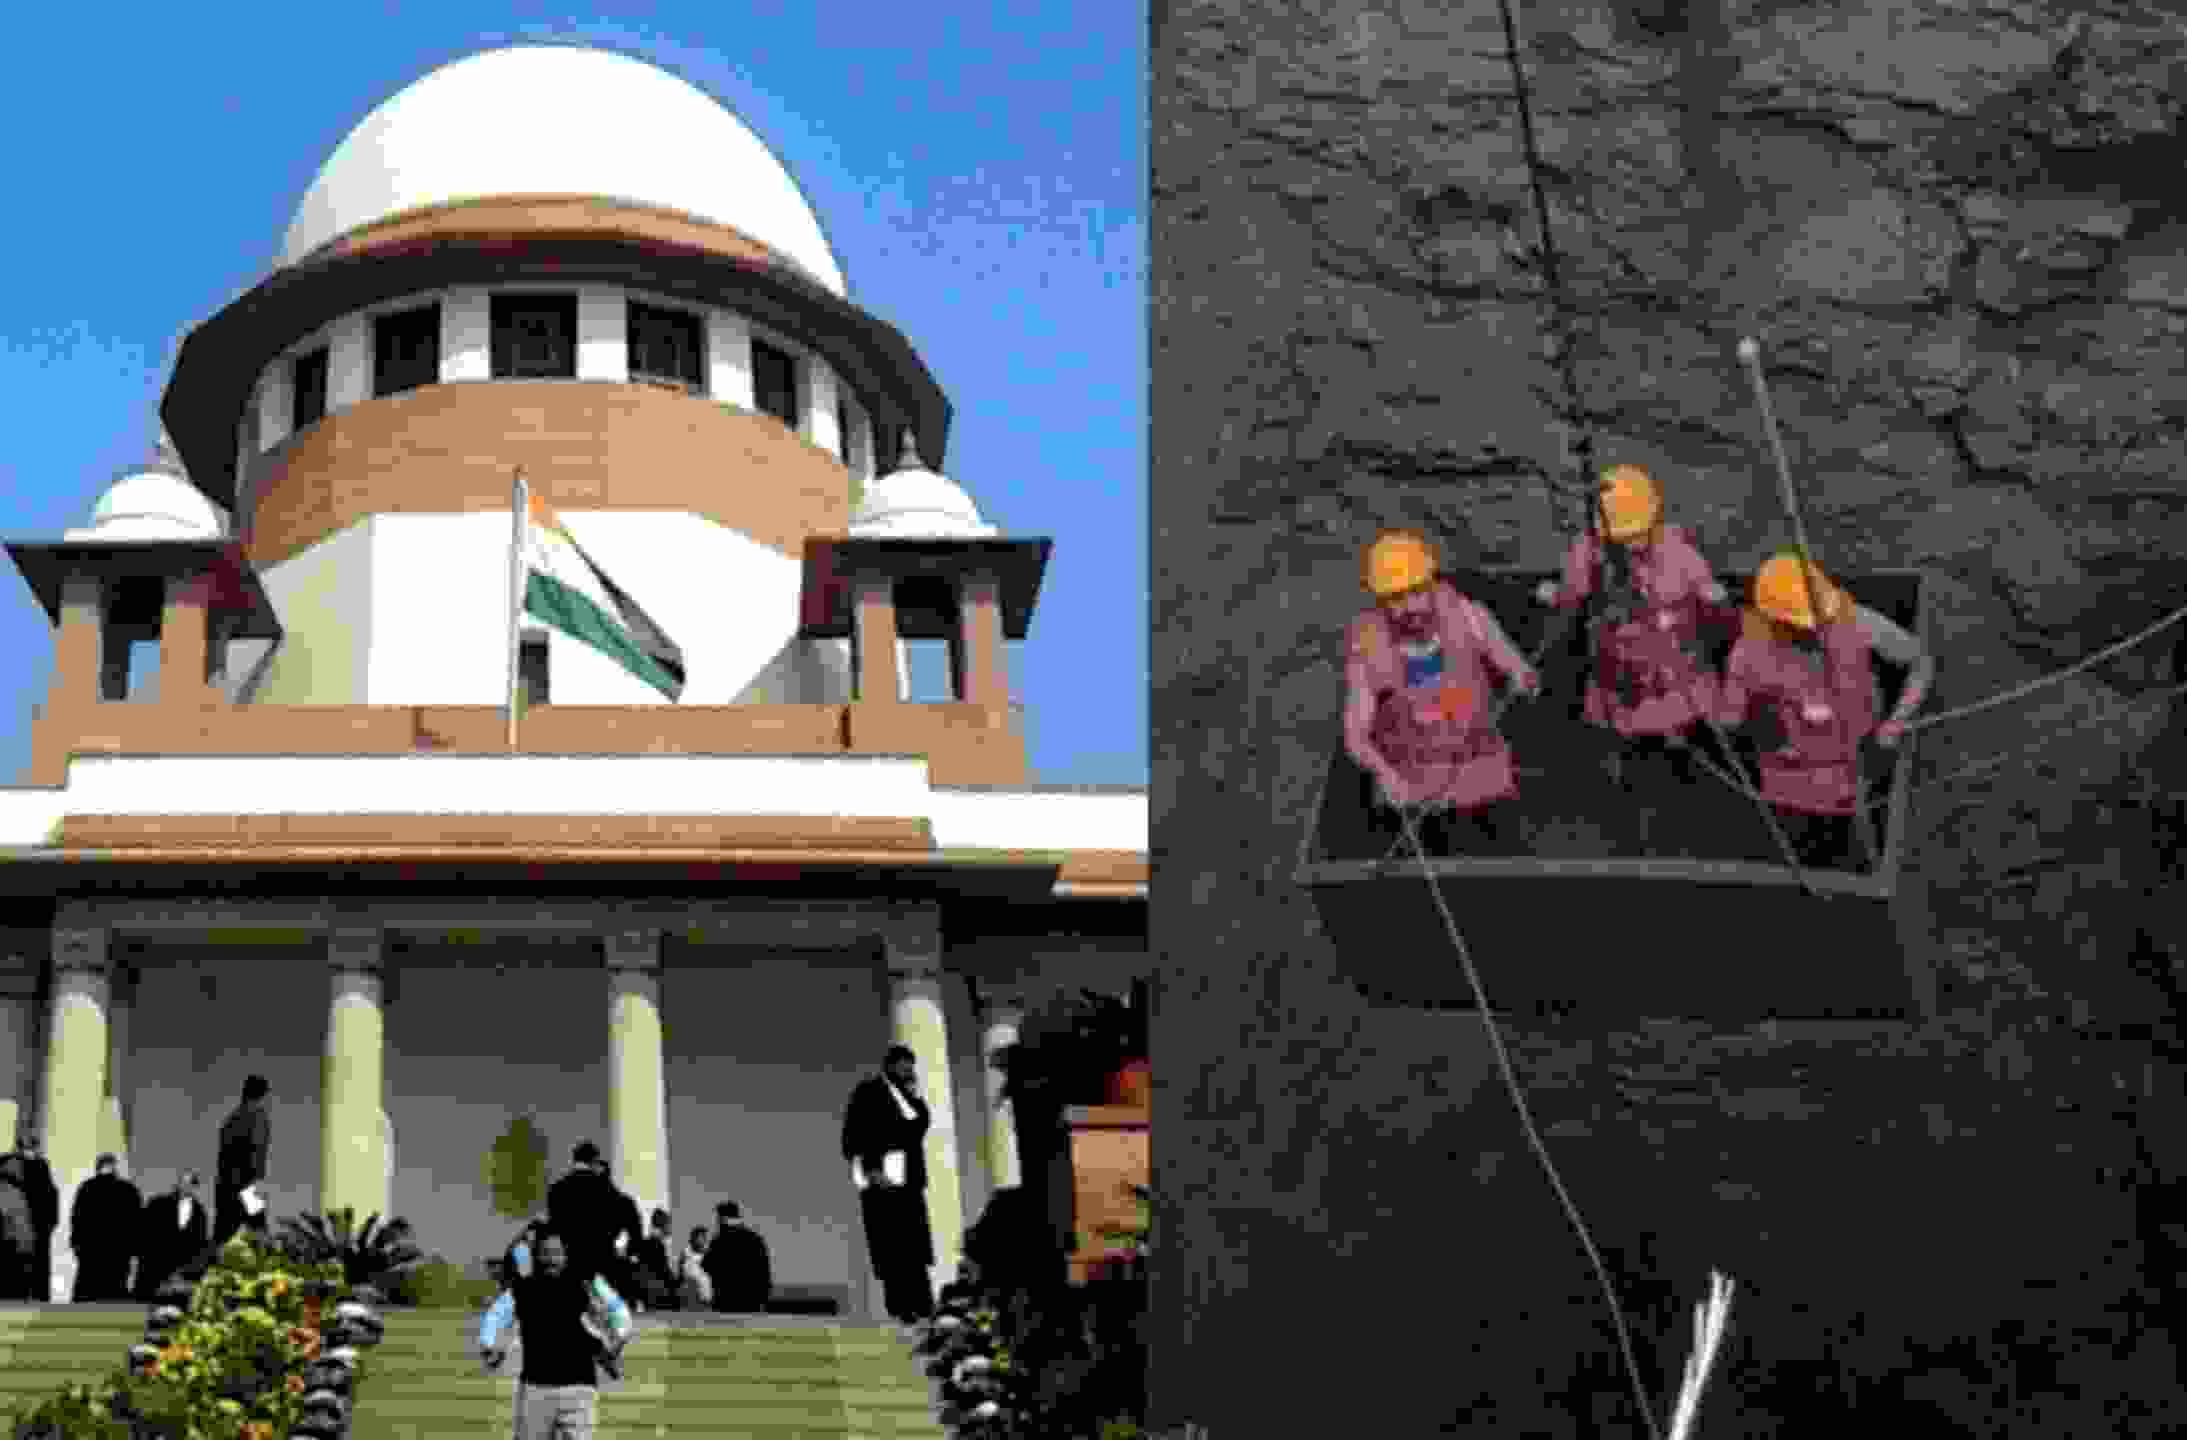 sc-hear-pil-rescue-effort-for-miners-news-dkoding